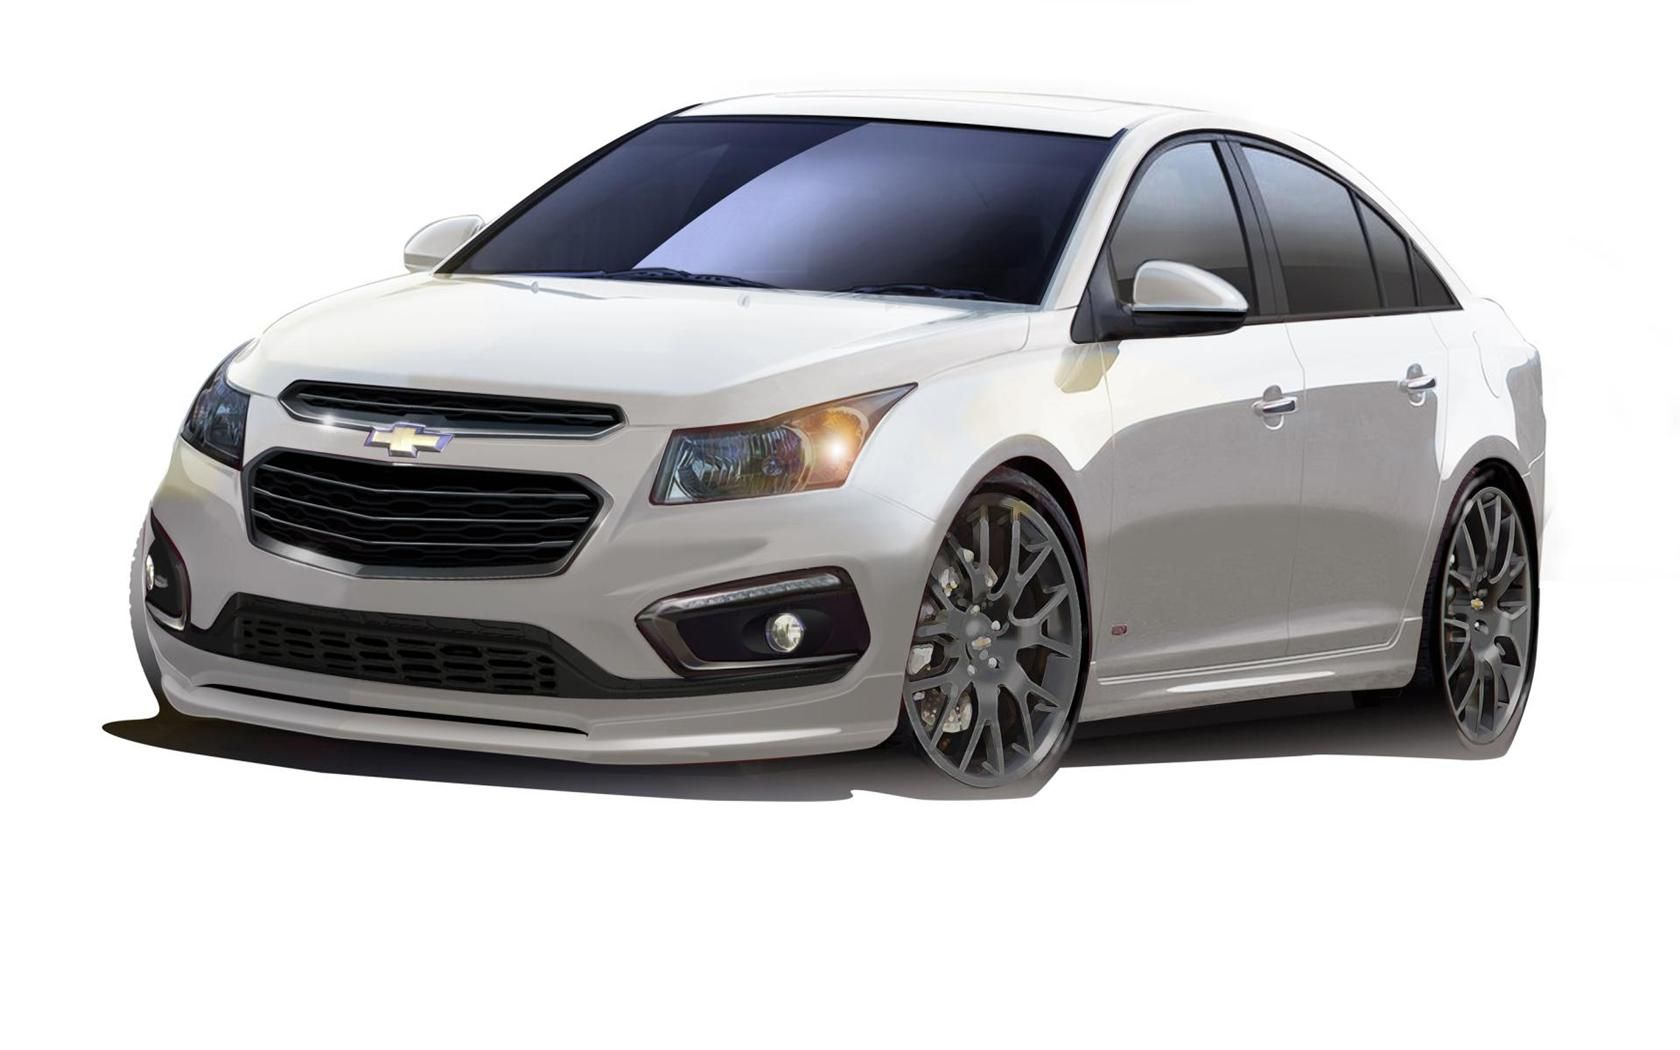 2015 Chevy Cruze Wallpapers Hd 2628 Wallpaper Wallsauto Com